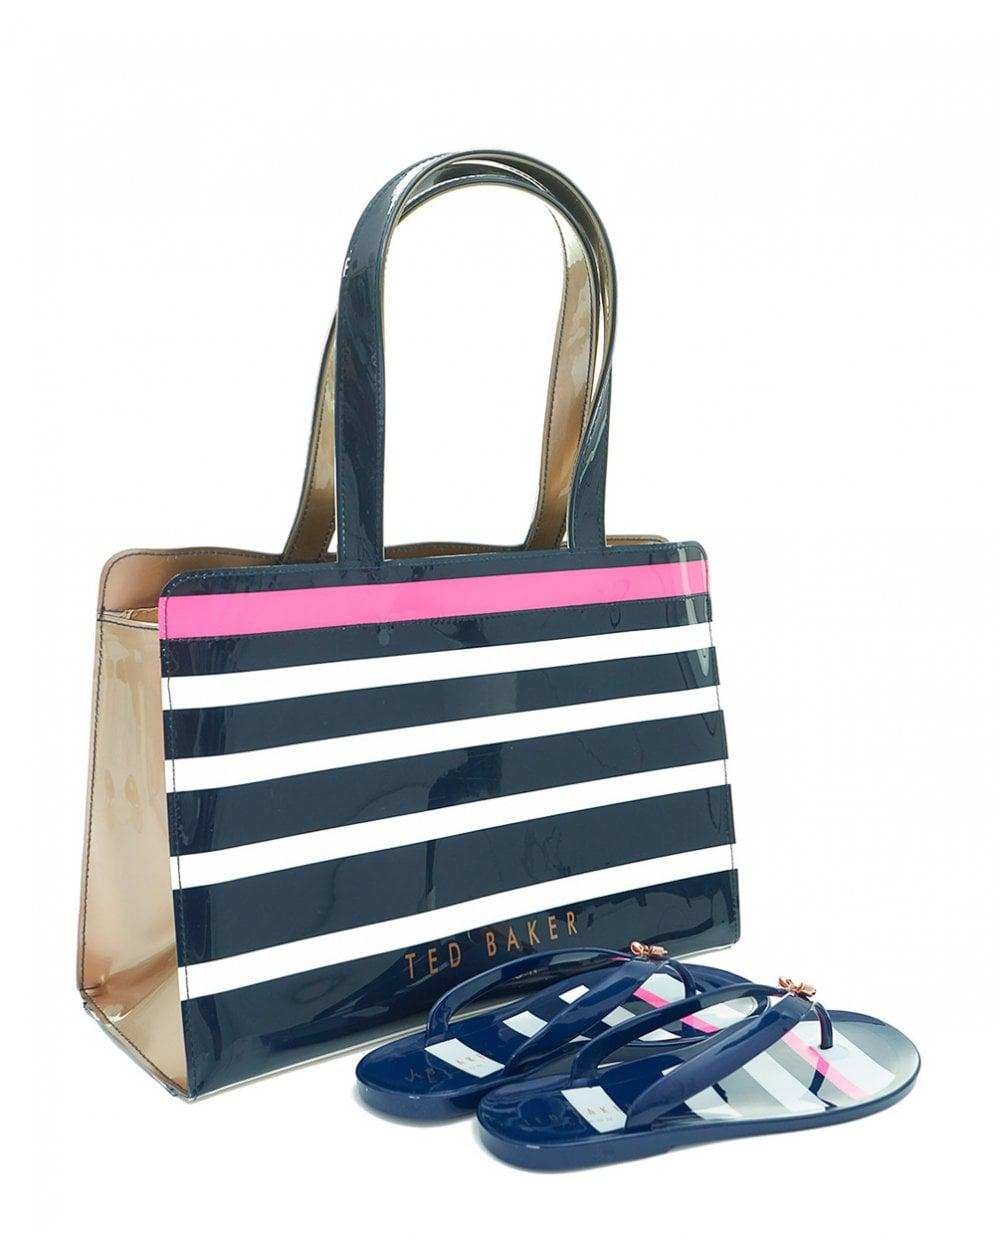 ae157d703fdd Ted Baker Striped Icon Flip Flop Bag Set in Blue - Lyst